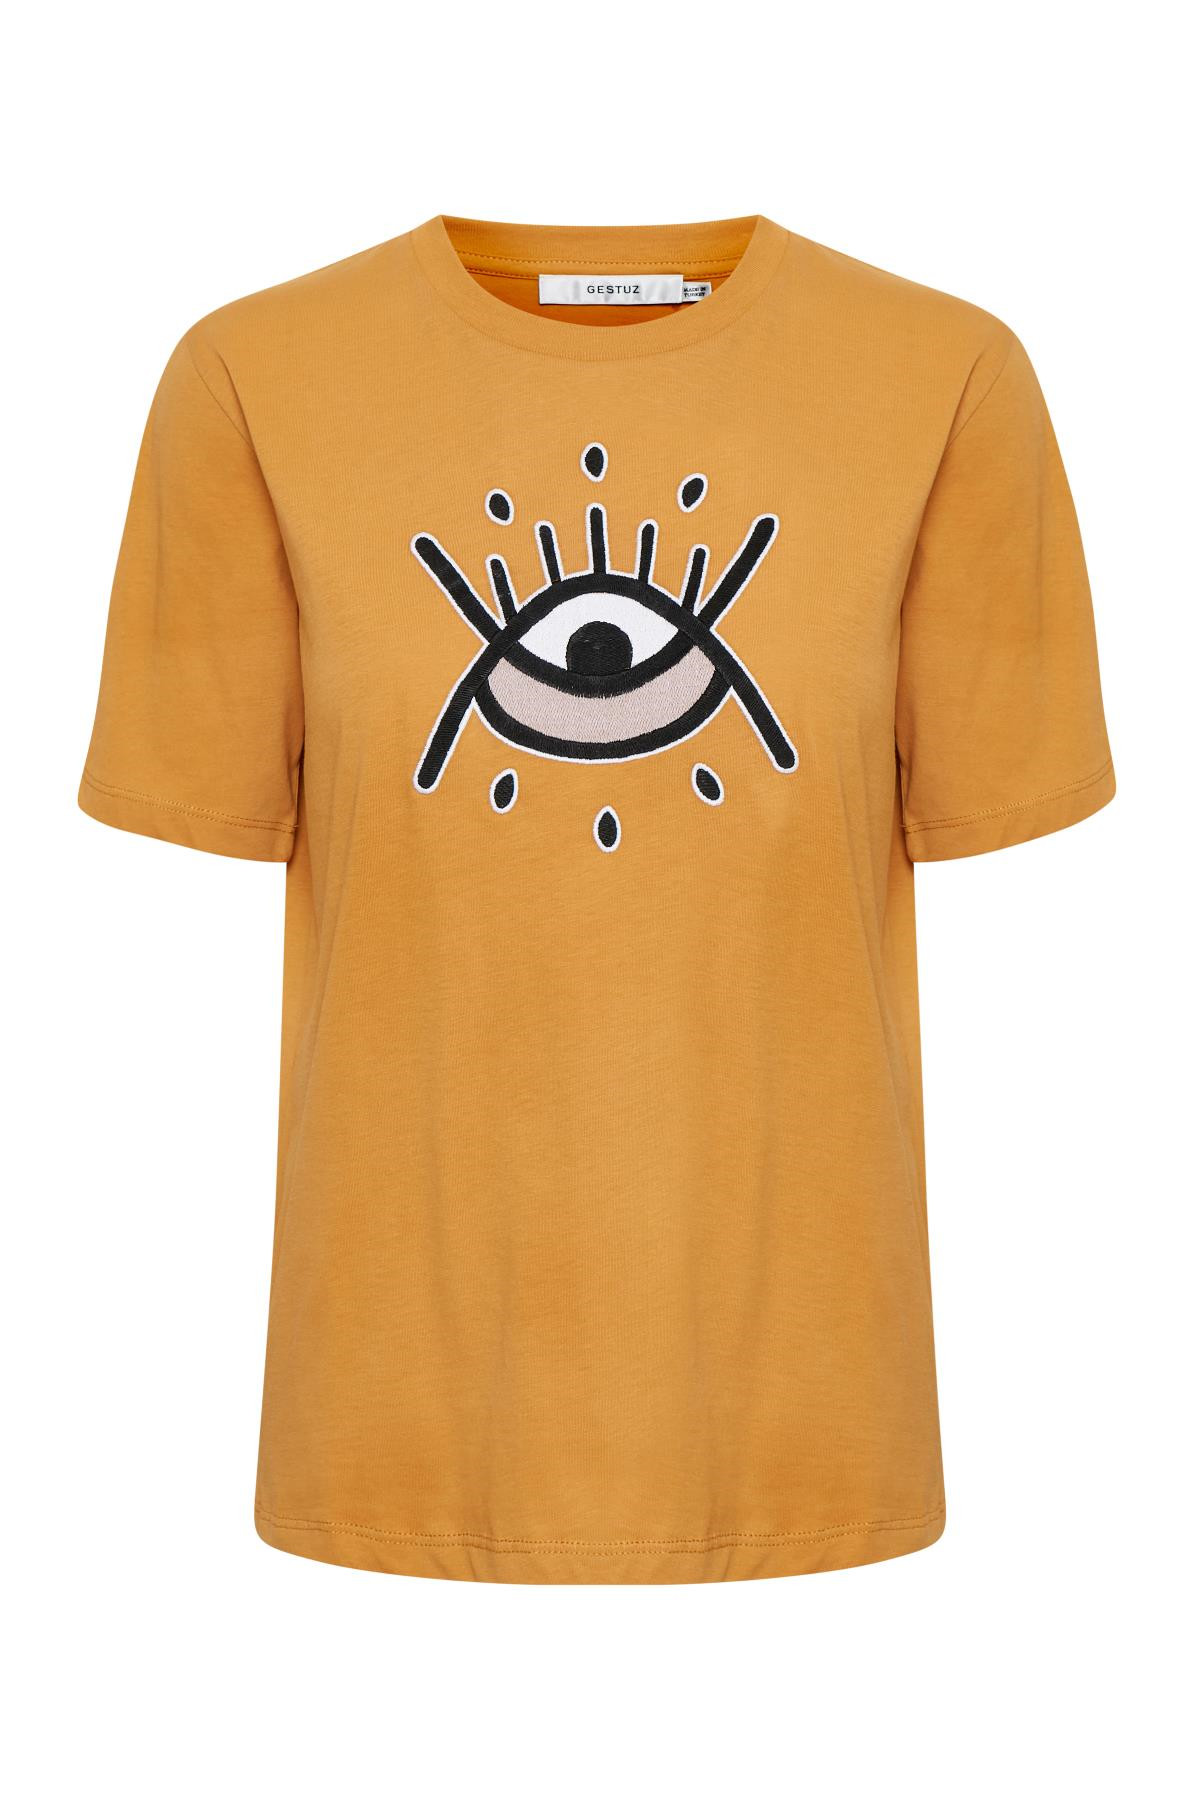 Image of   GESTUZ UNIVERSEGZ TEE N (Narcissus Yellow 90576, M)